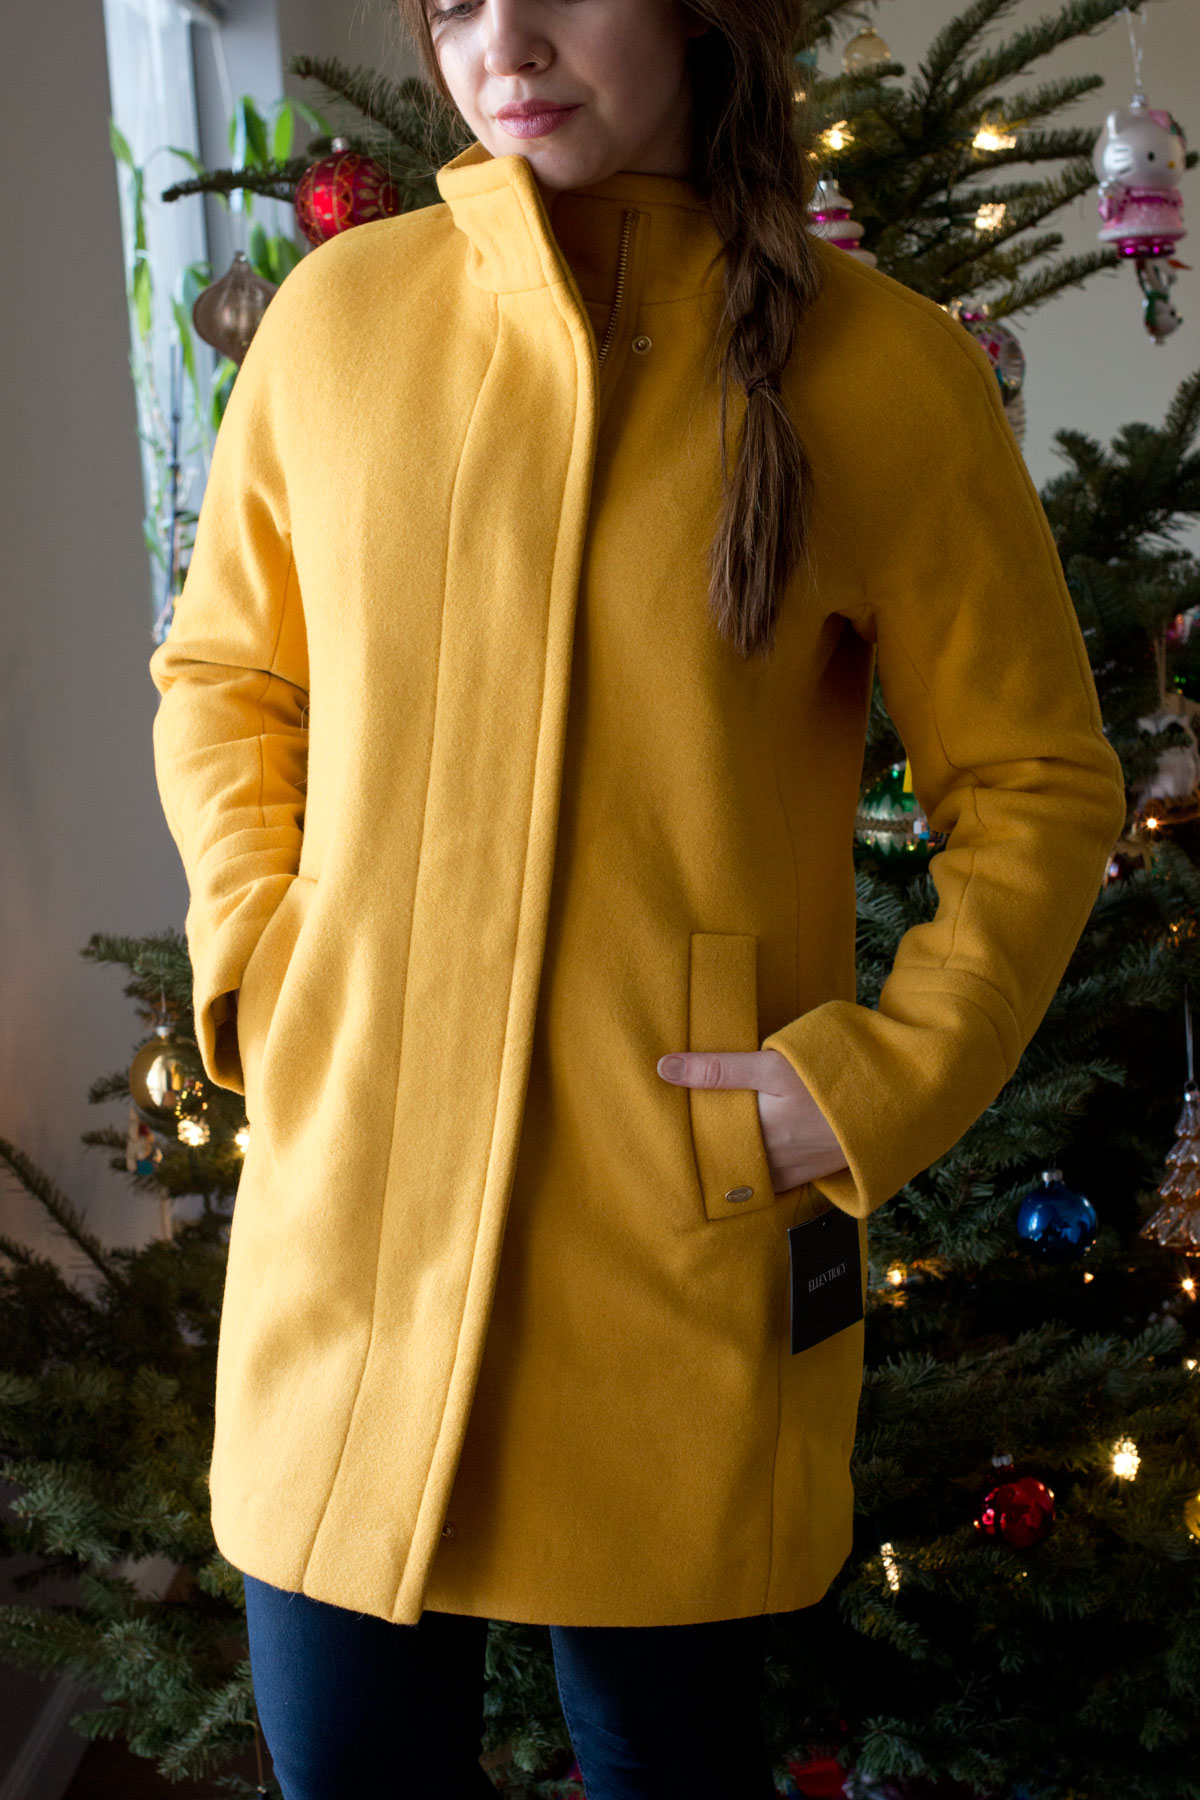 Nordstrom Half Yearly Sale 2015: Ellen Tracy Wool Blend Stadium Coat in Marigold // hellorigby seattle fashion & beauty blog